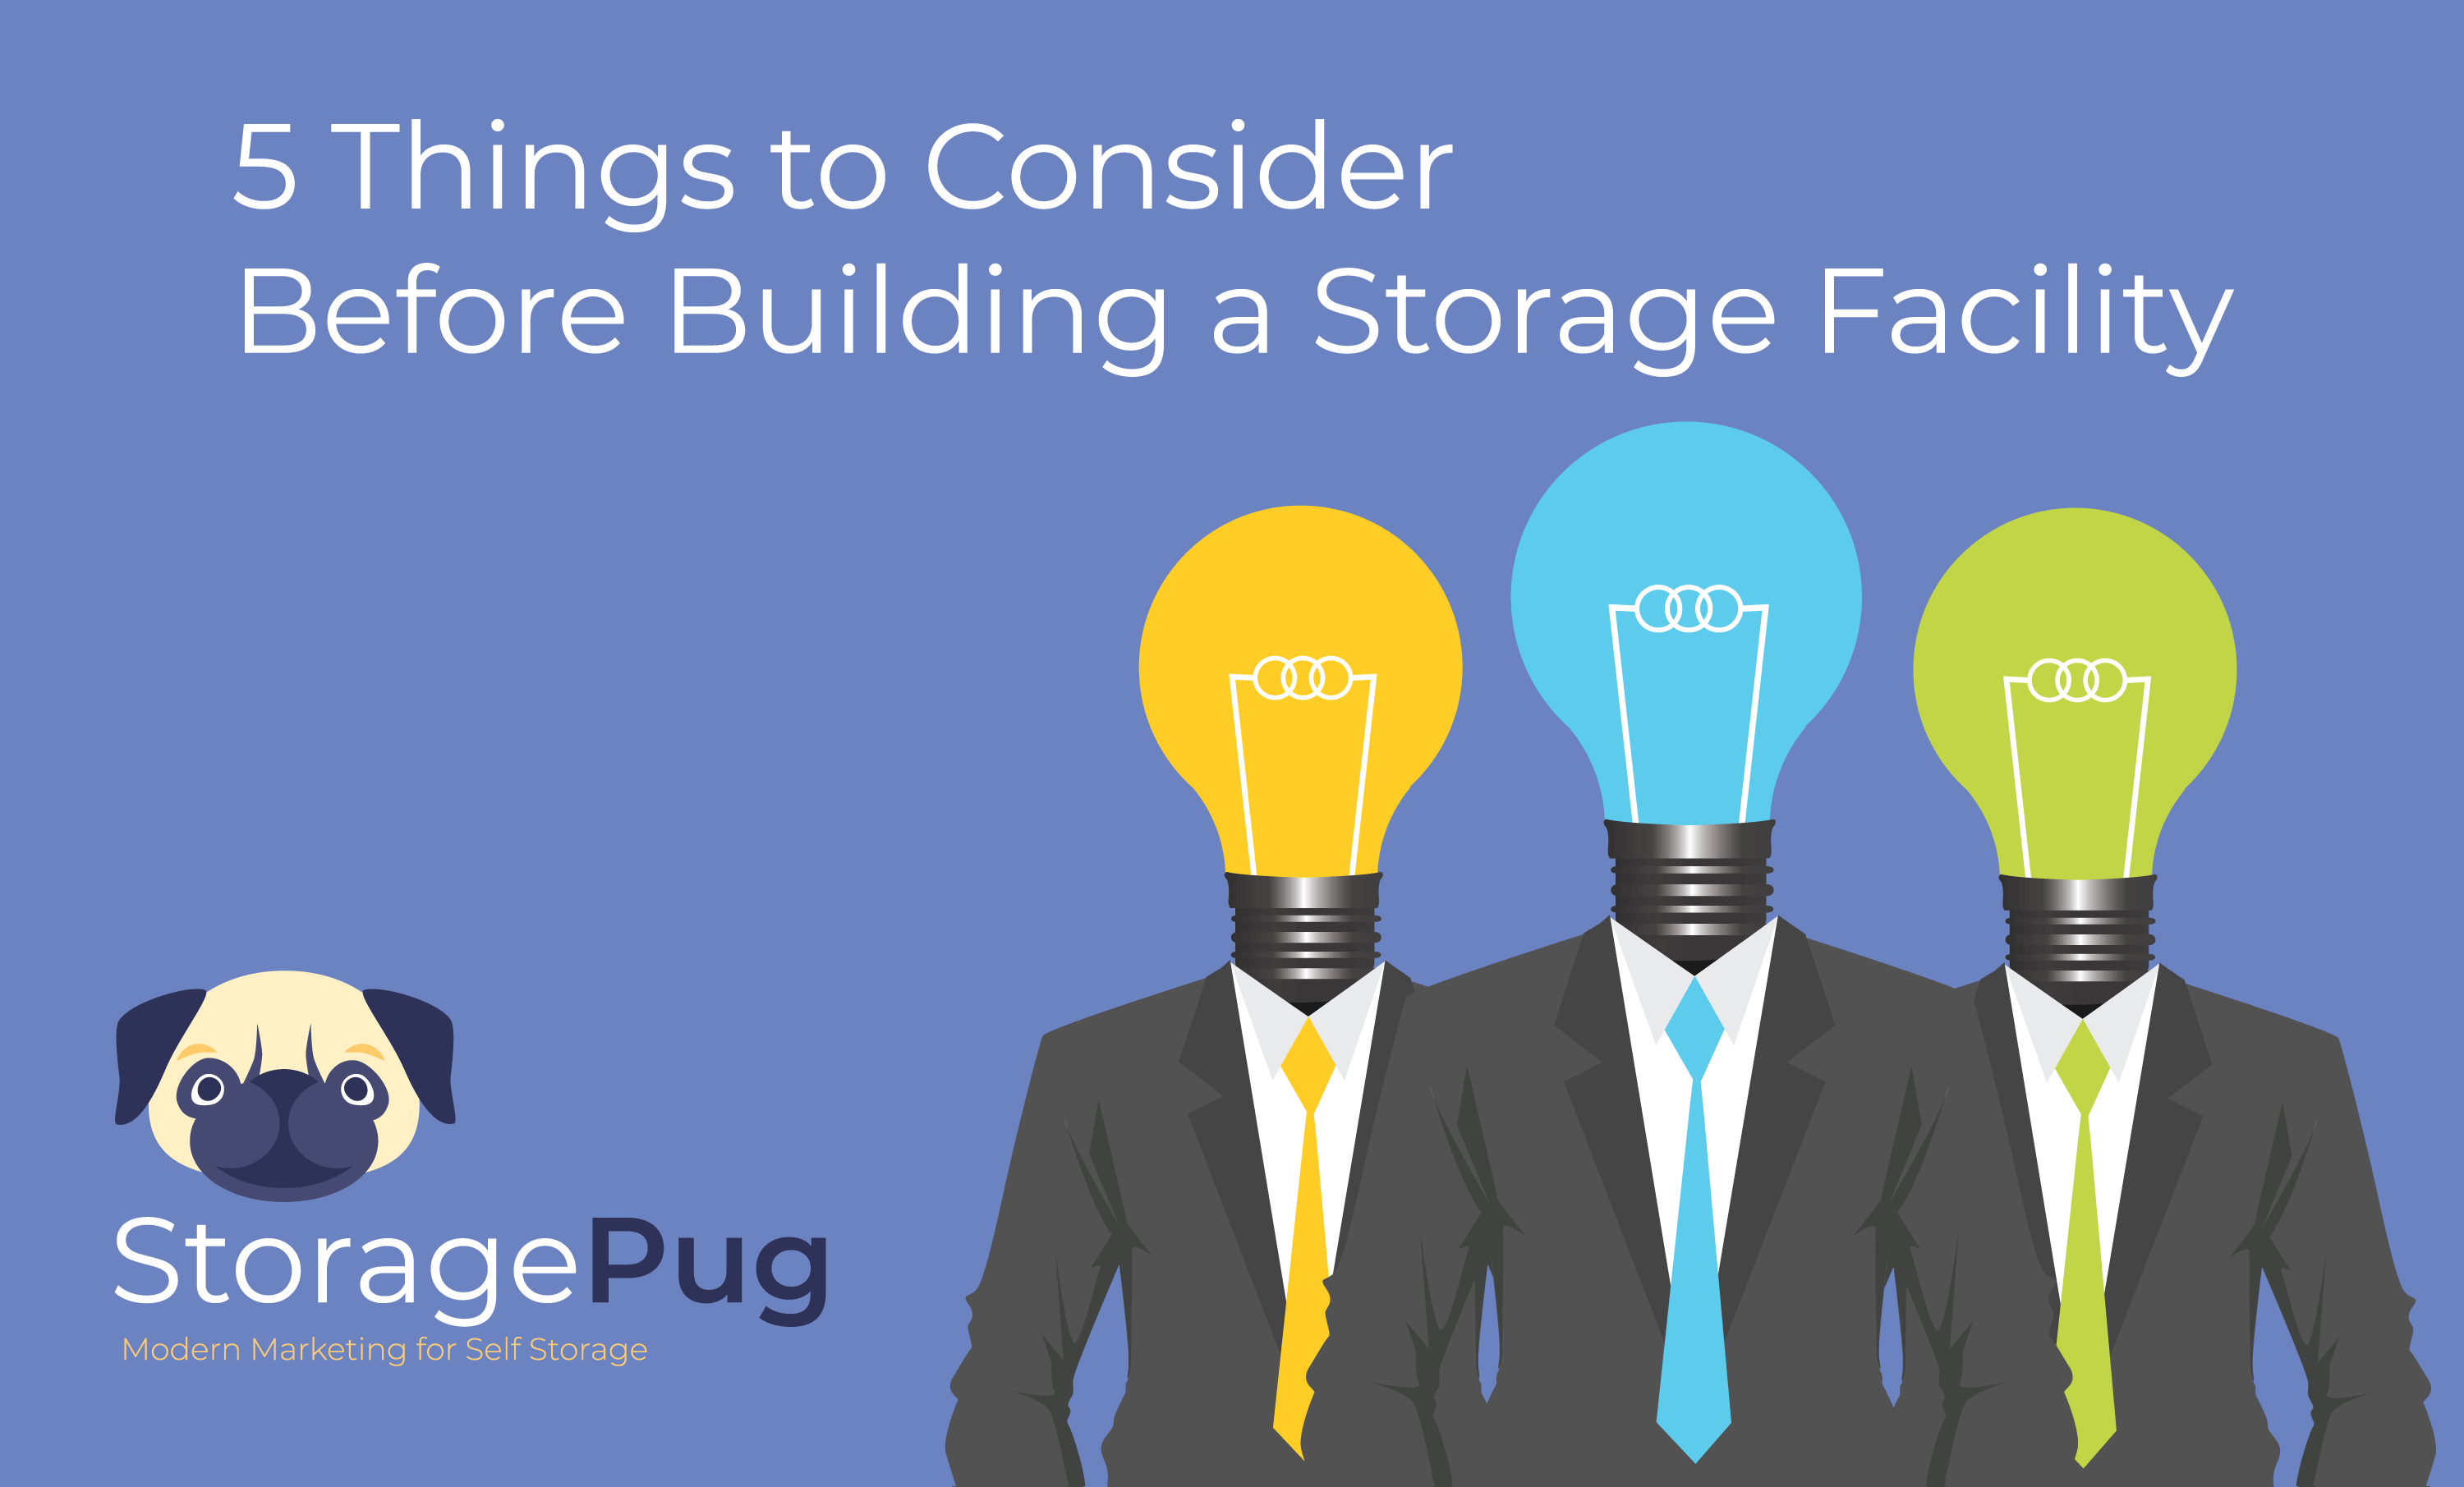 5 Things to Consider Before Building a Storage Facility